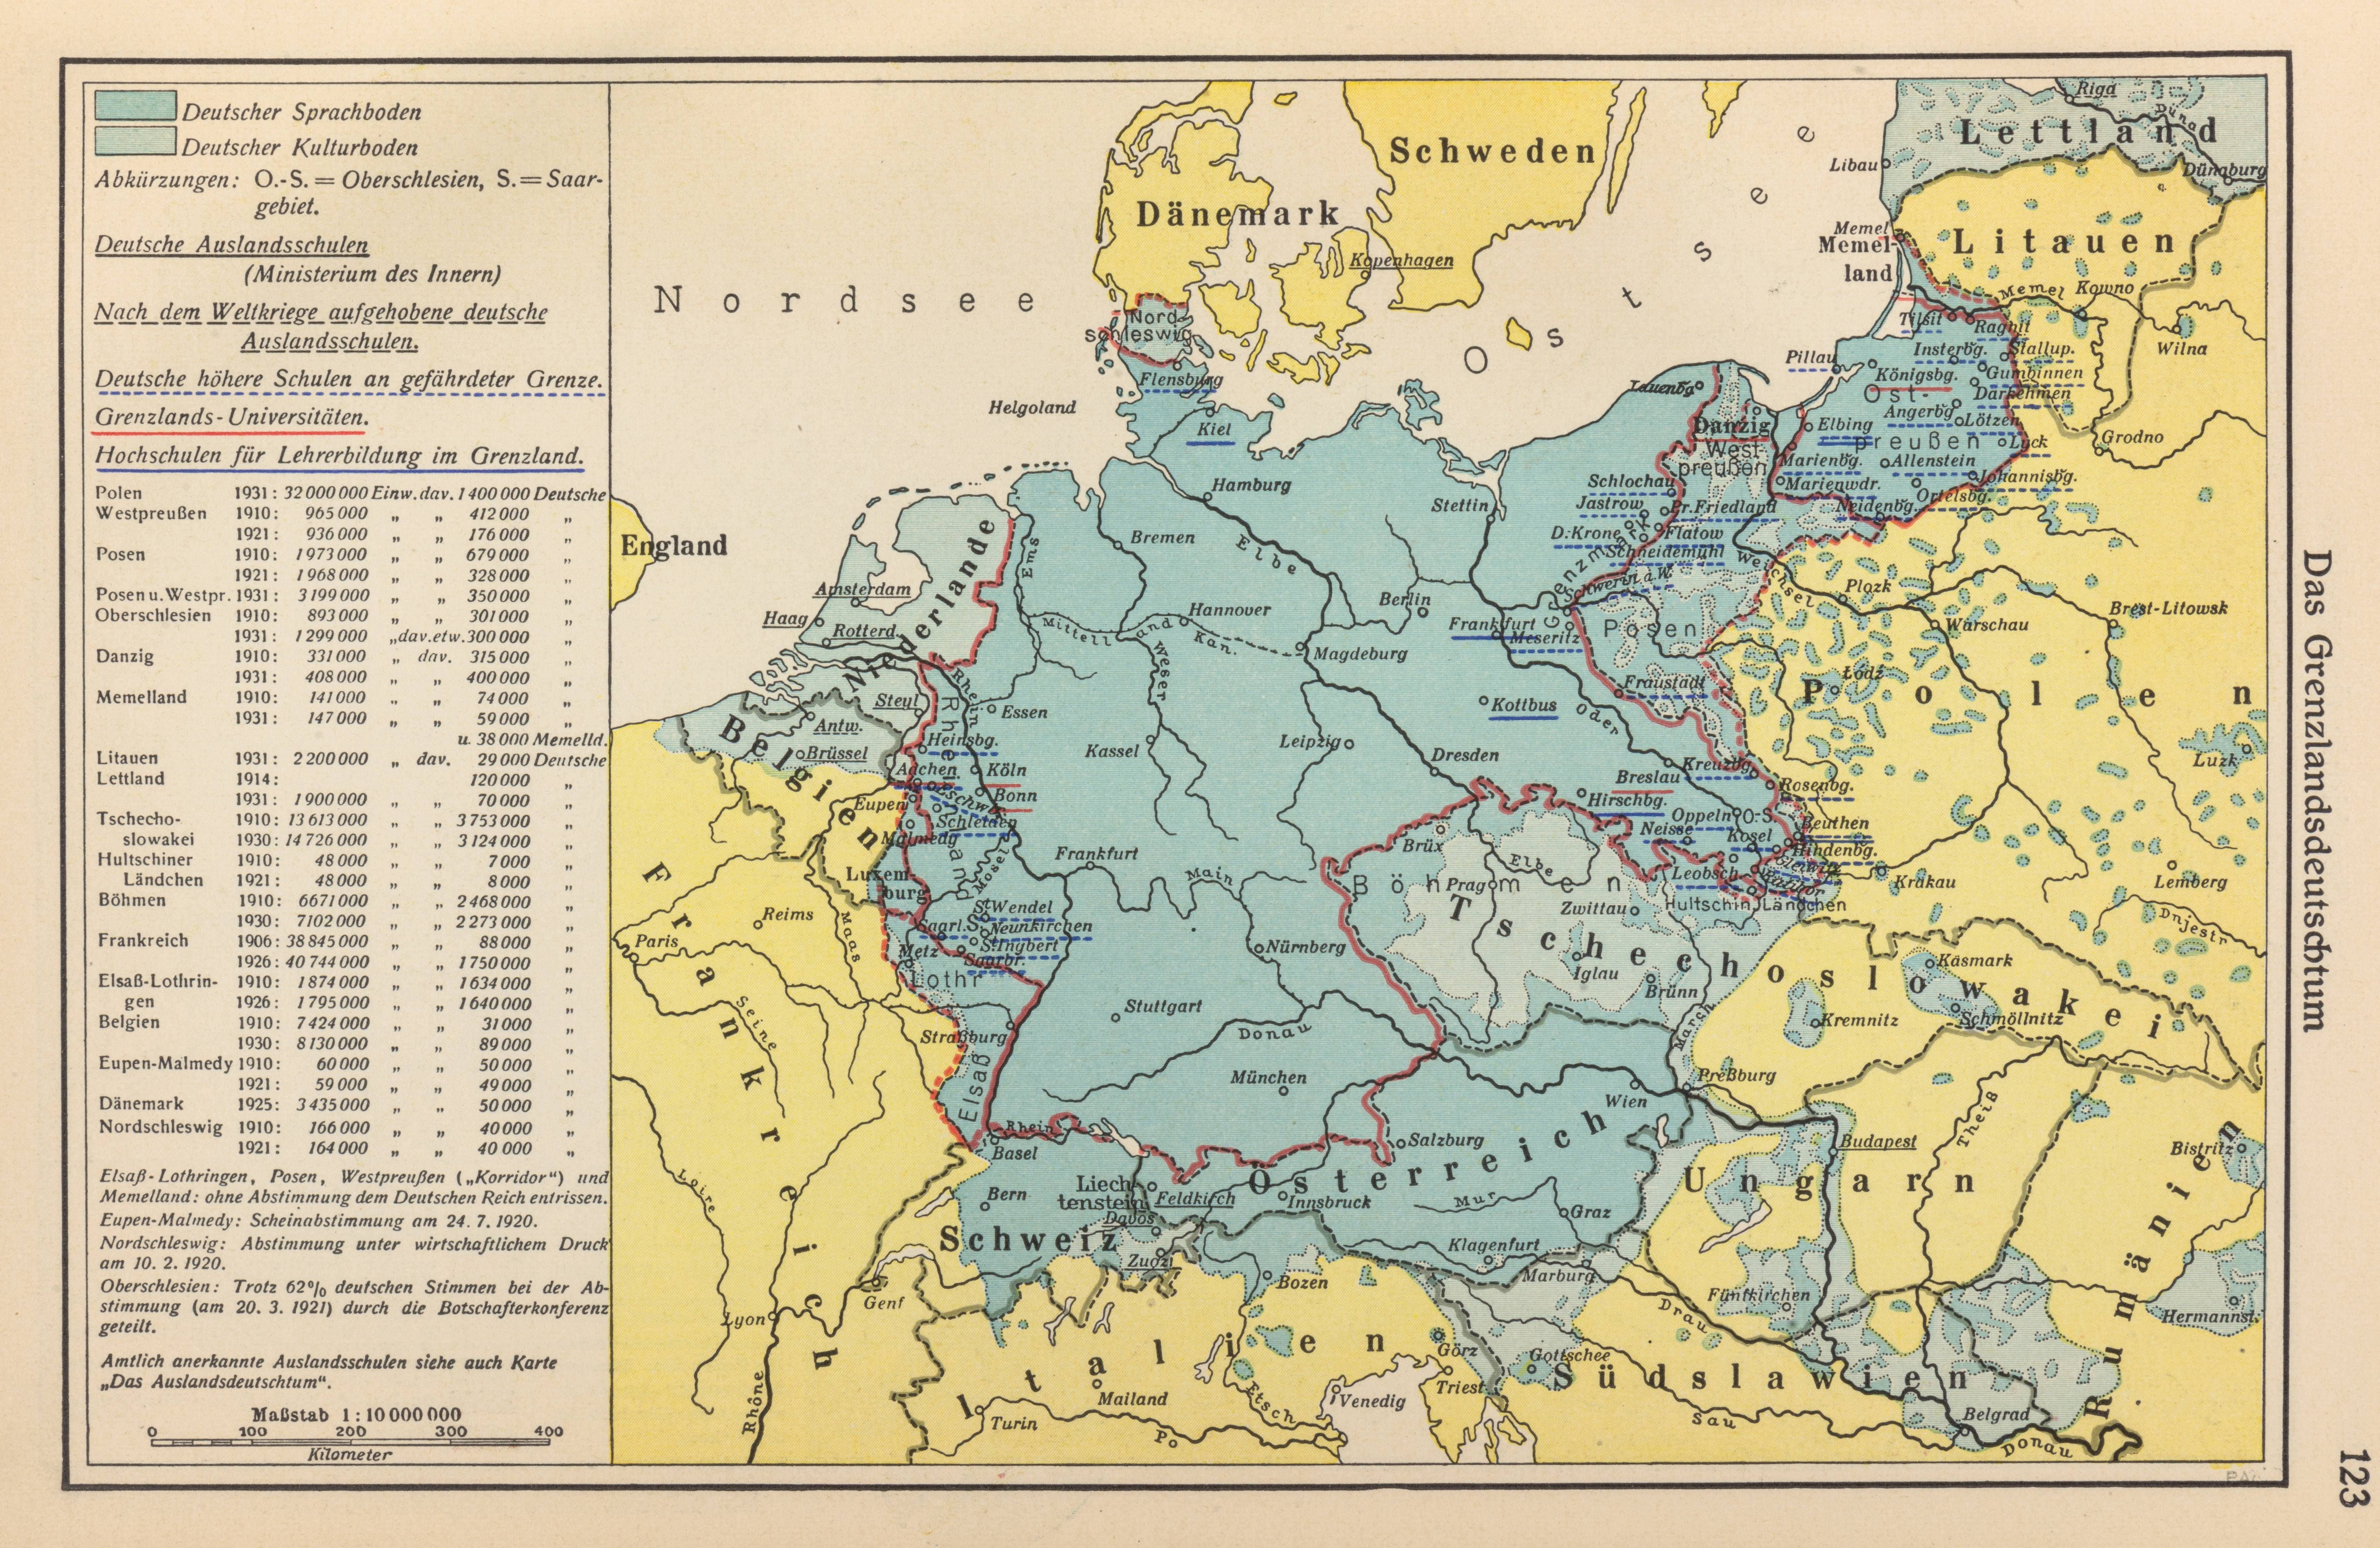 Map Of Germany 1938.The Borderland Germans 1938 Edson Historical Maps Map